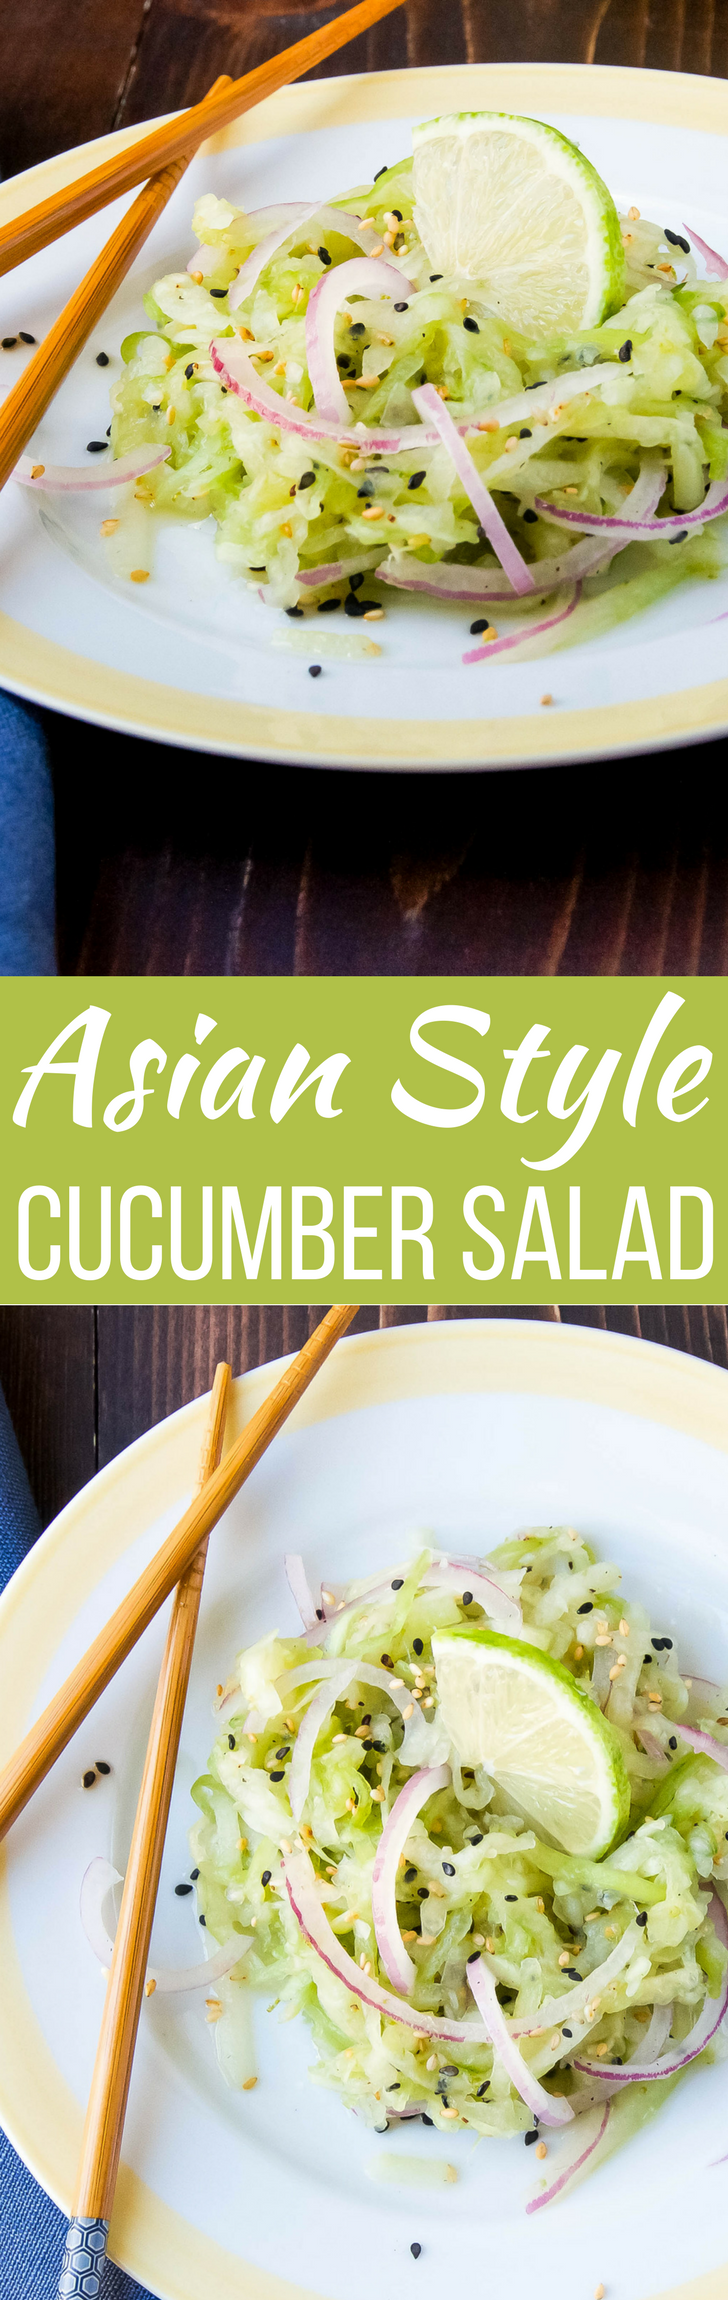 This easy Asian-Style Cucumber Salad has the best homemade dressing!  Serve w/ your spiciest dishes to cool the fire, so you can keep going back for more!